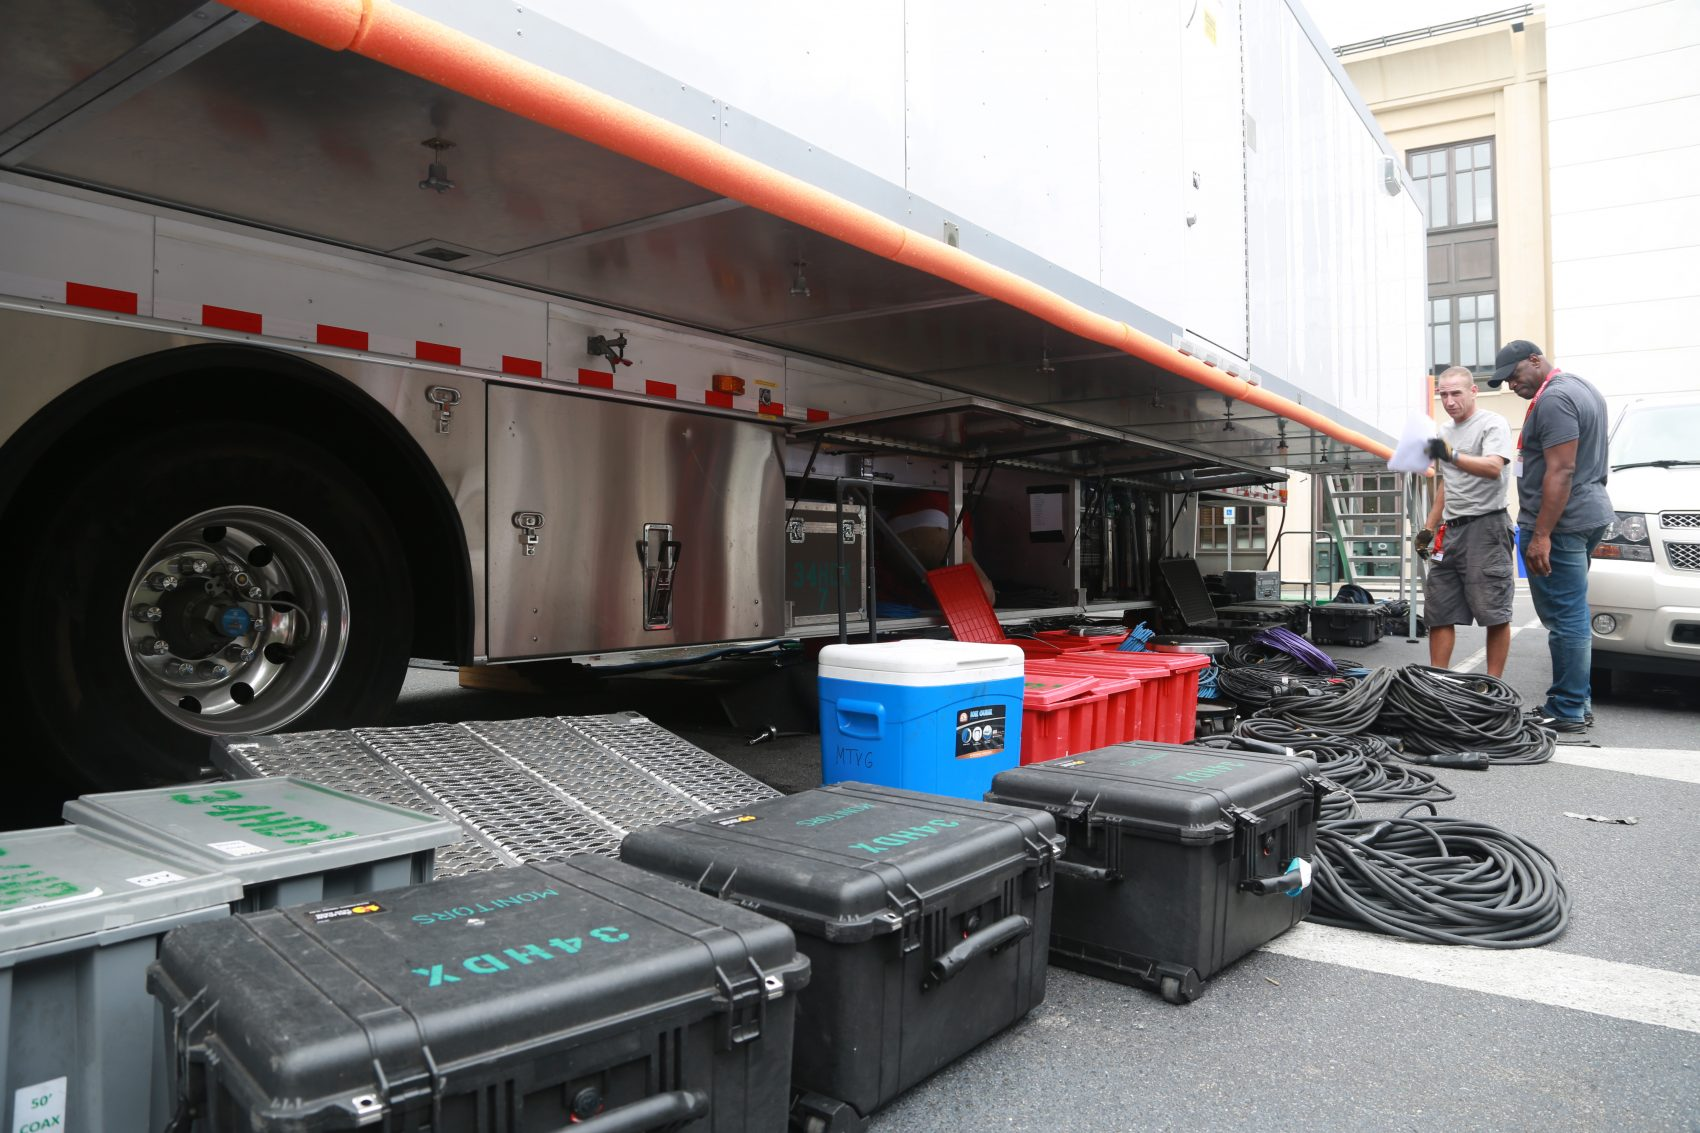 A Look Inside BMG's Live Production Toolbox